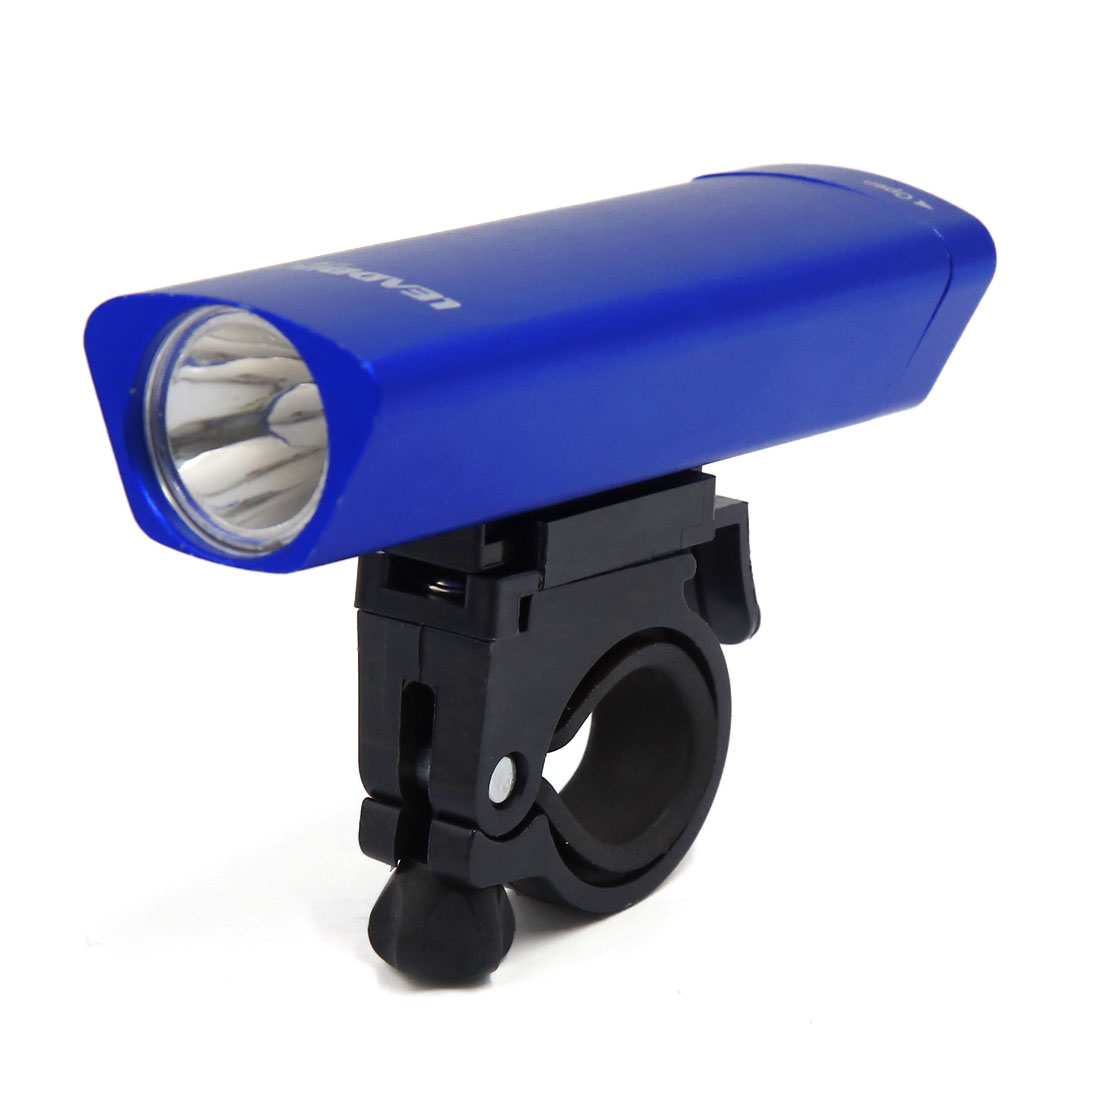 Adjustable Bicycle White LED Lamp Head Front Light Constant Flashlight Blue